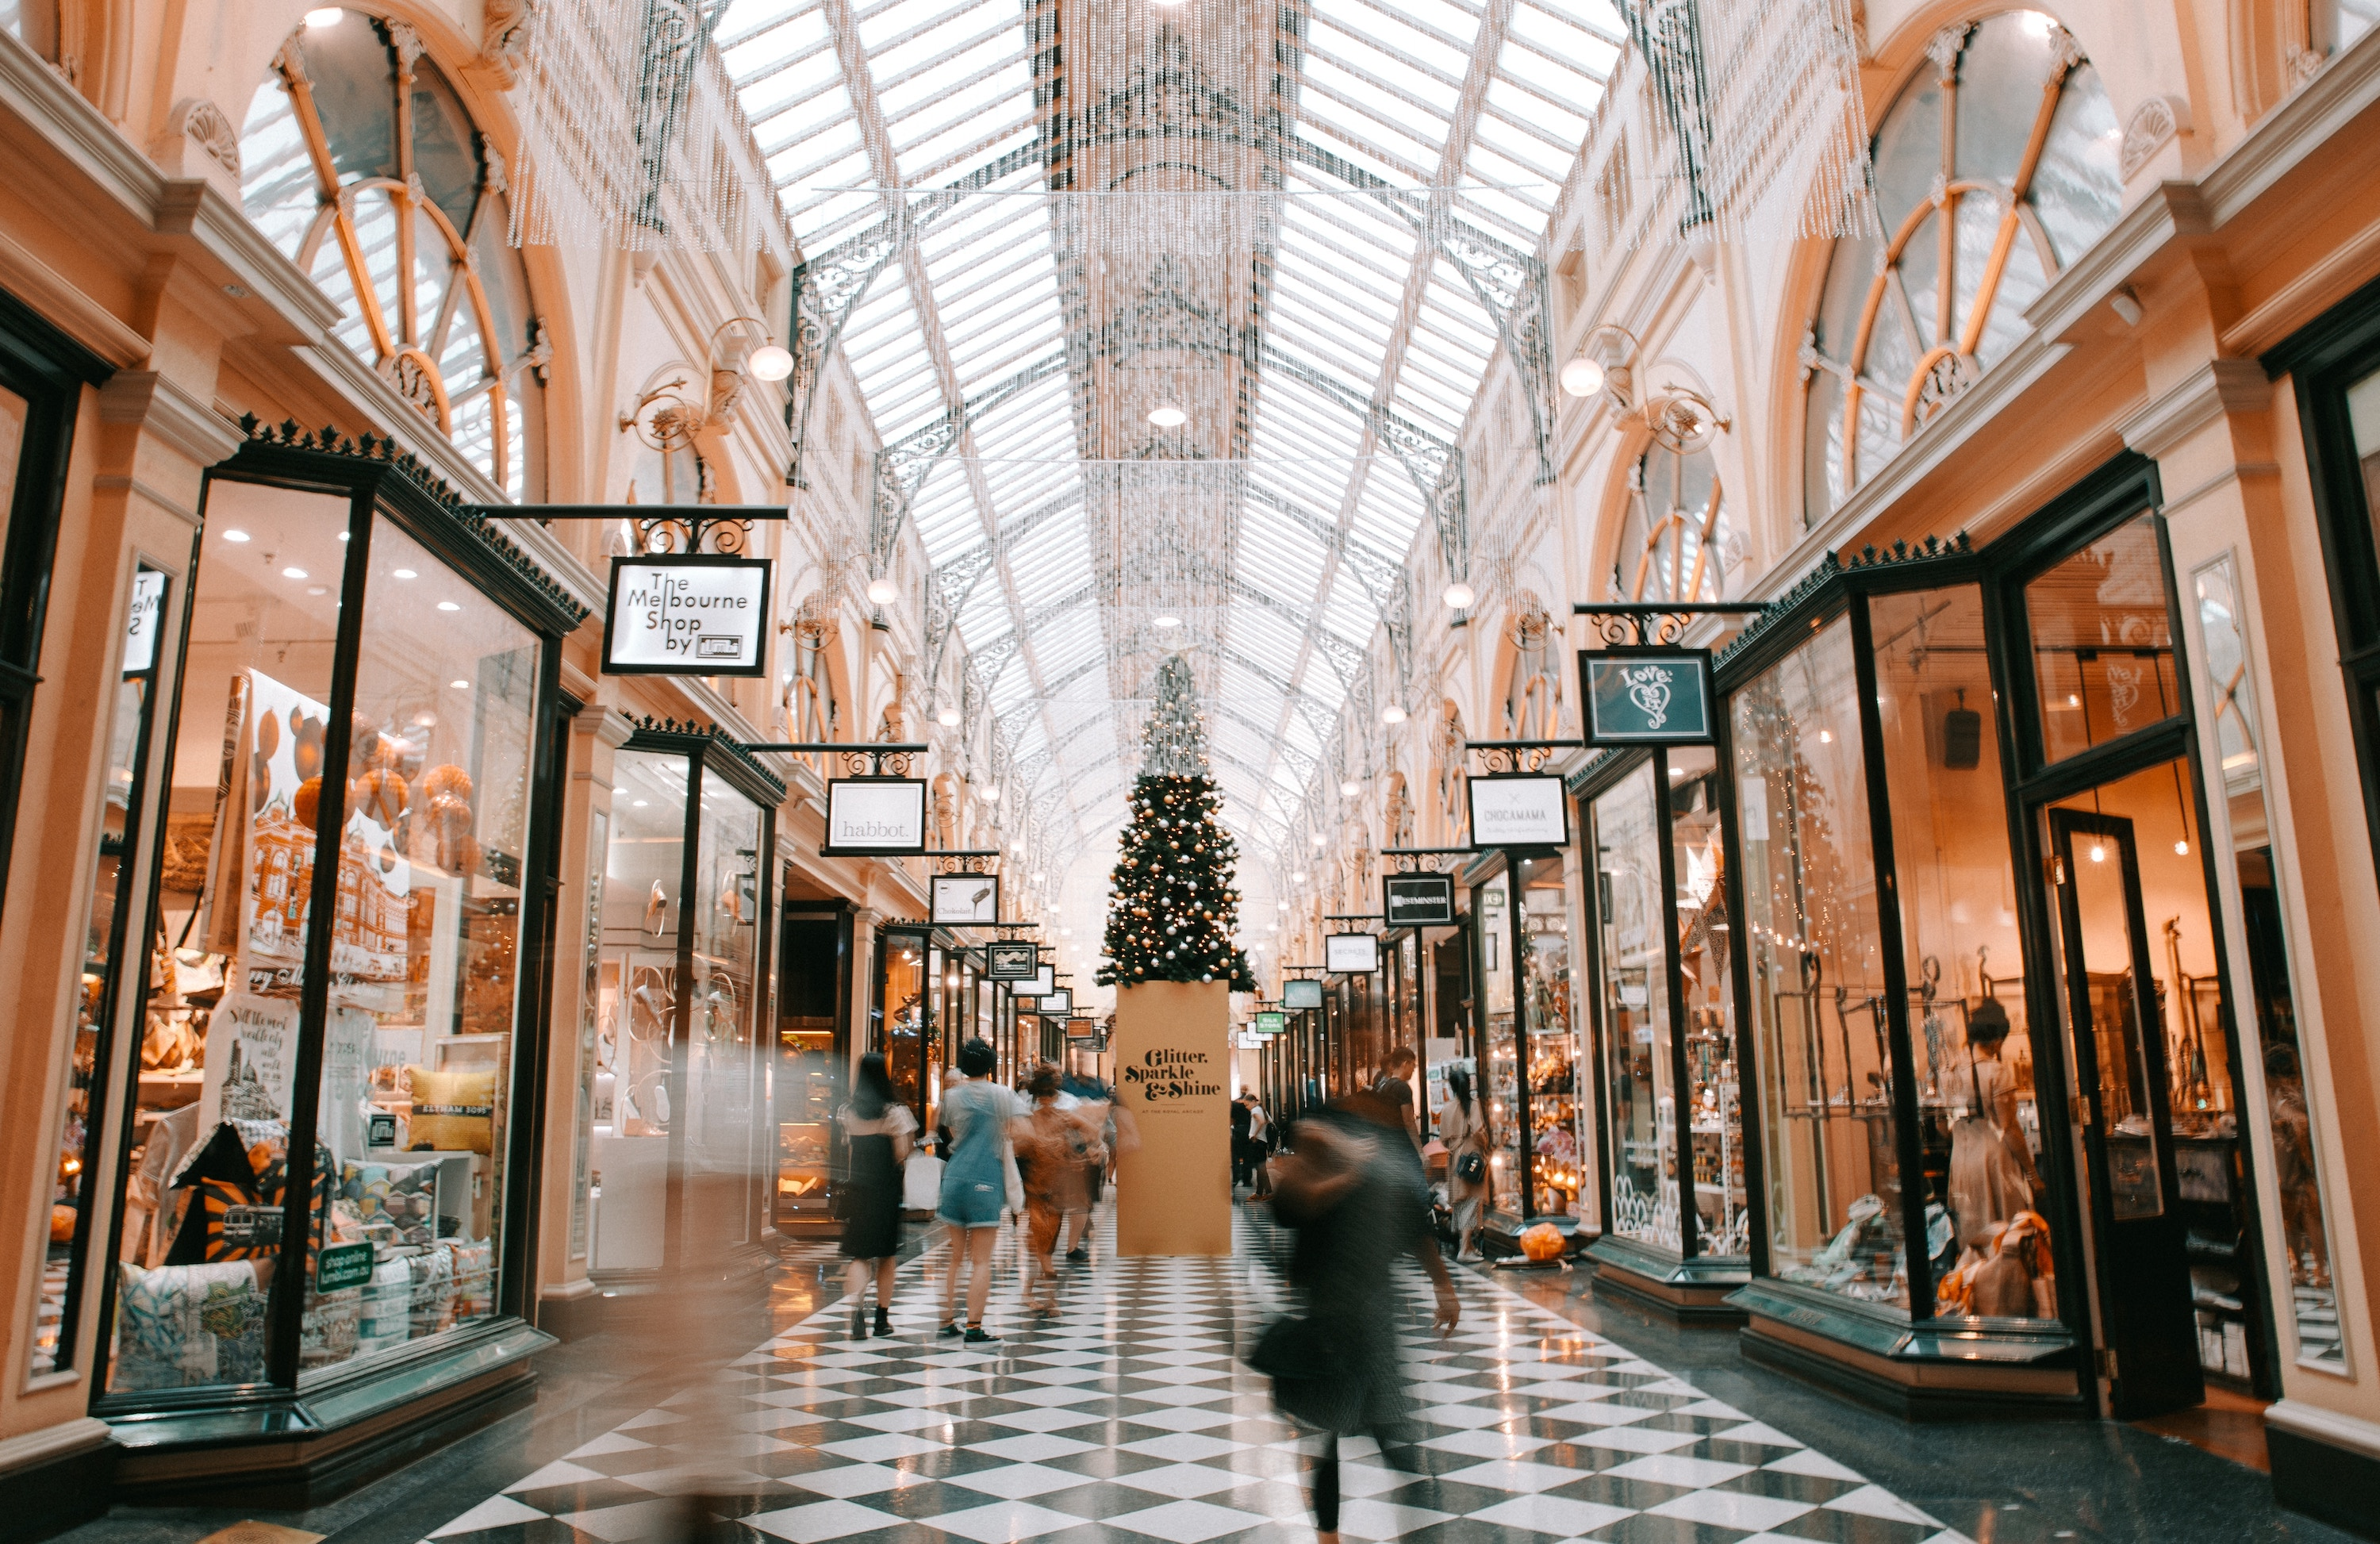 The 6 Major Ways That IT Is Disrupting the Retail Industry (and What You Can Do About Them)